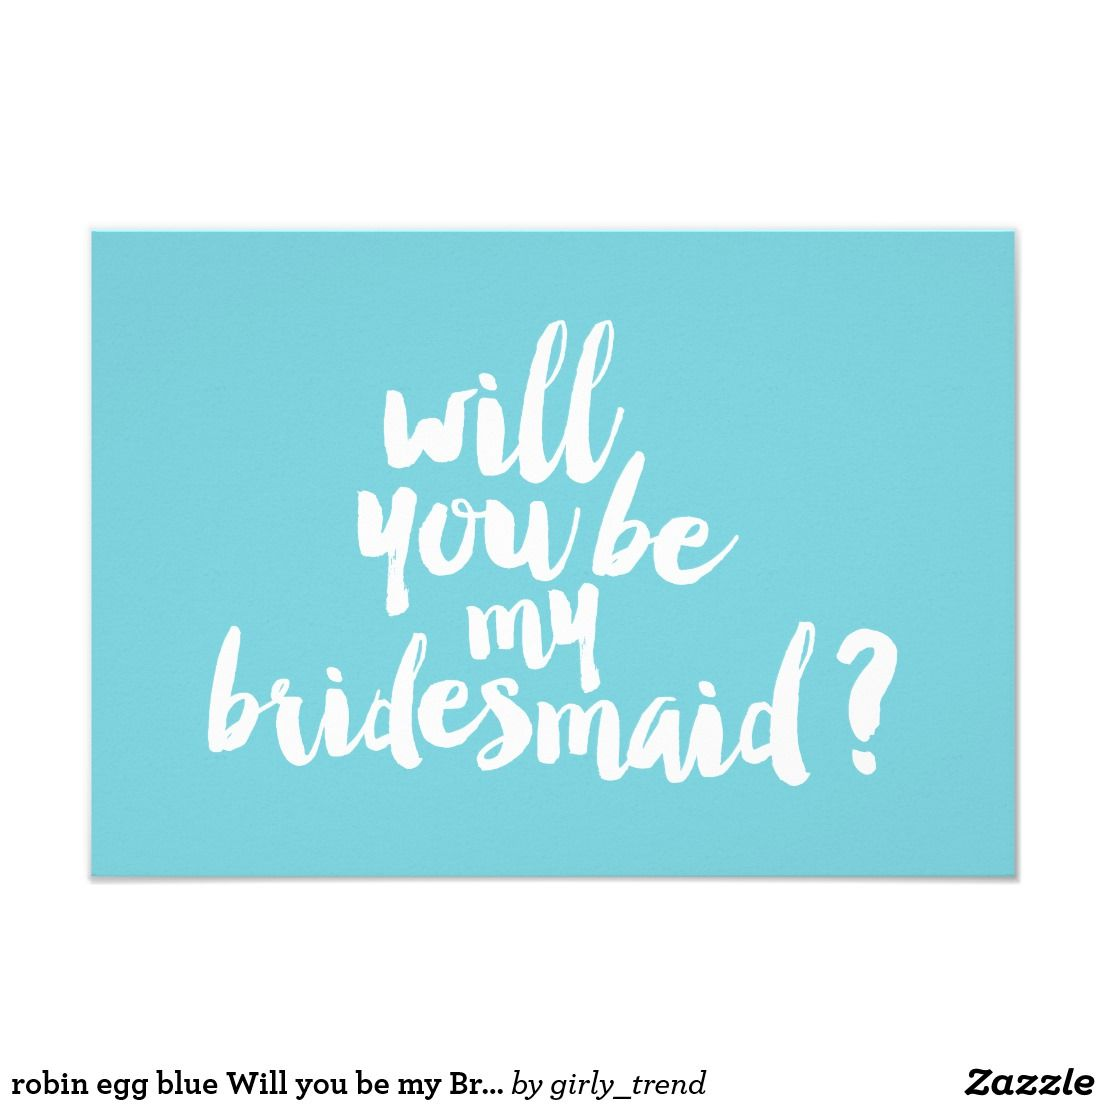 robin egg blue Will you be my Bridesmaid